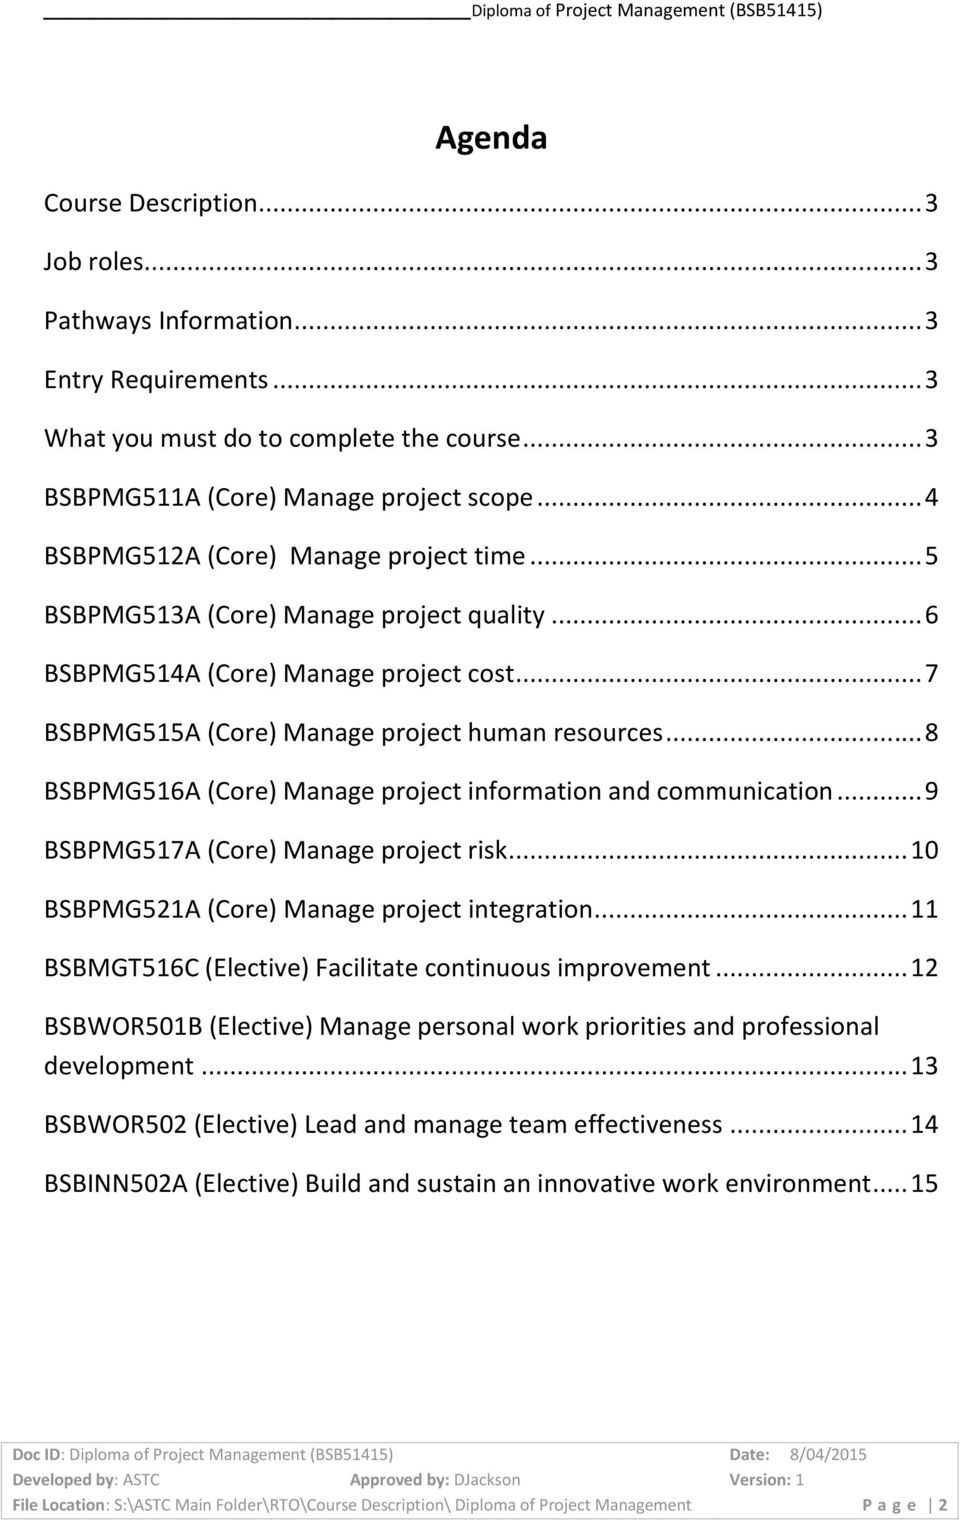 .. 8 BSBPMG516A (Core) Manage project information and communication... 9 BSBPMG517A (Core) Manage project risk... 10 BSBPMG521A (Core) Manage project integration.